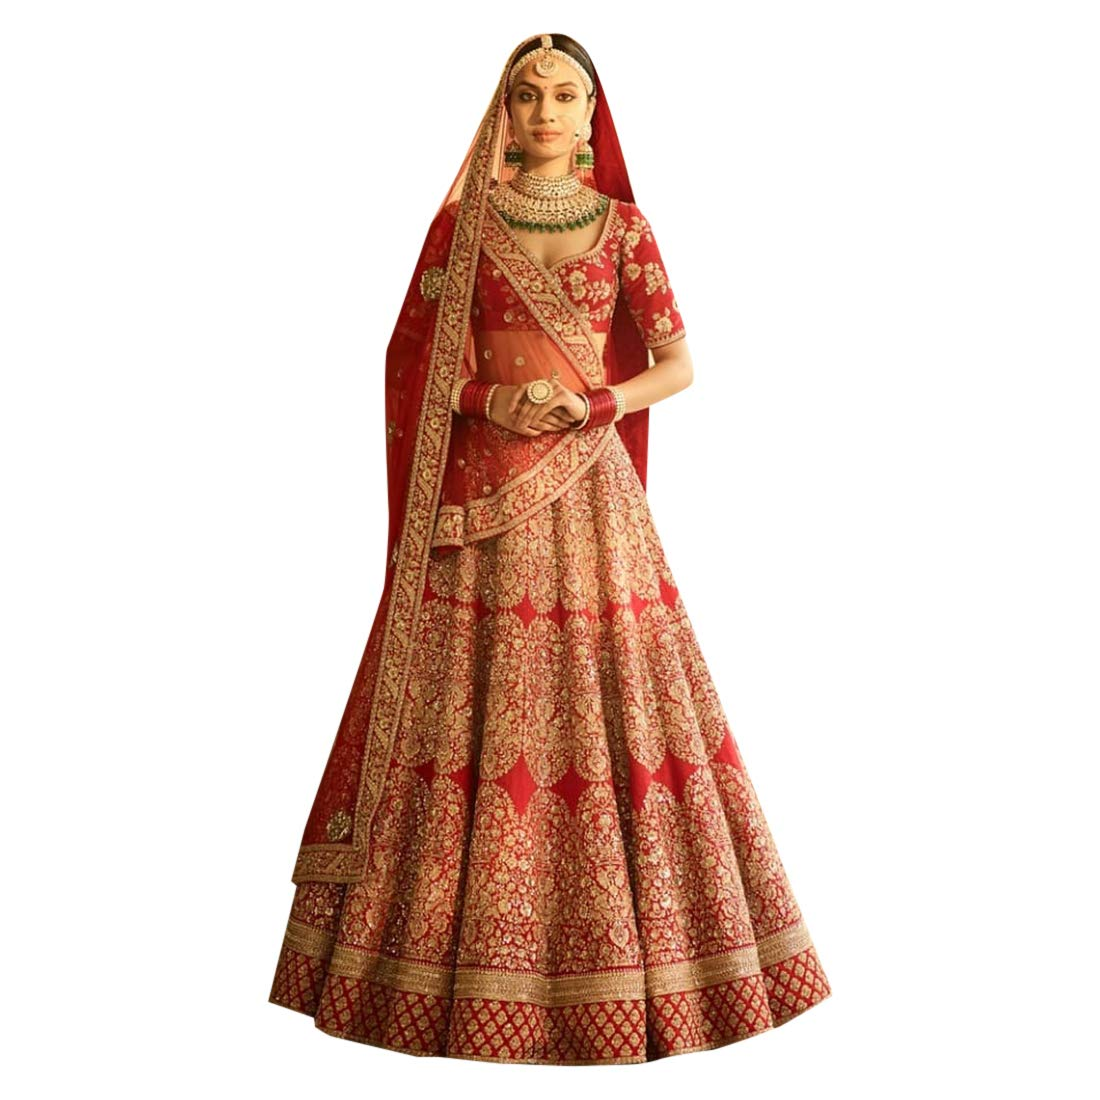 3a225d34ae Amazon.com: Red Bridal Designer Royal 2 Dupatta Wedding Festive Chennai  Silk Lehenga Choli Ghagra Dupatta Indian Muslim Zari Bespoke BP: Home  Improvement